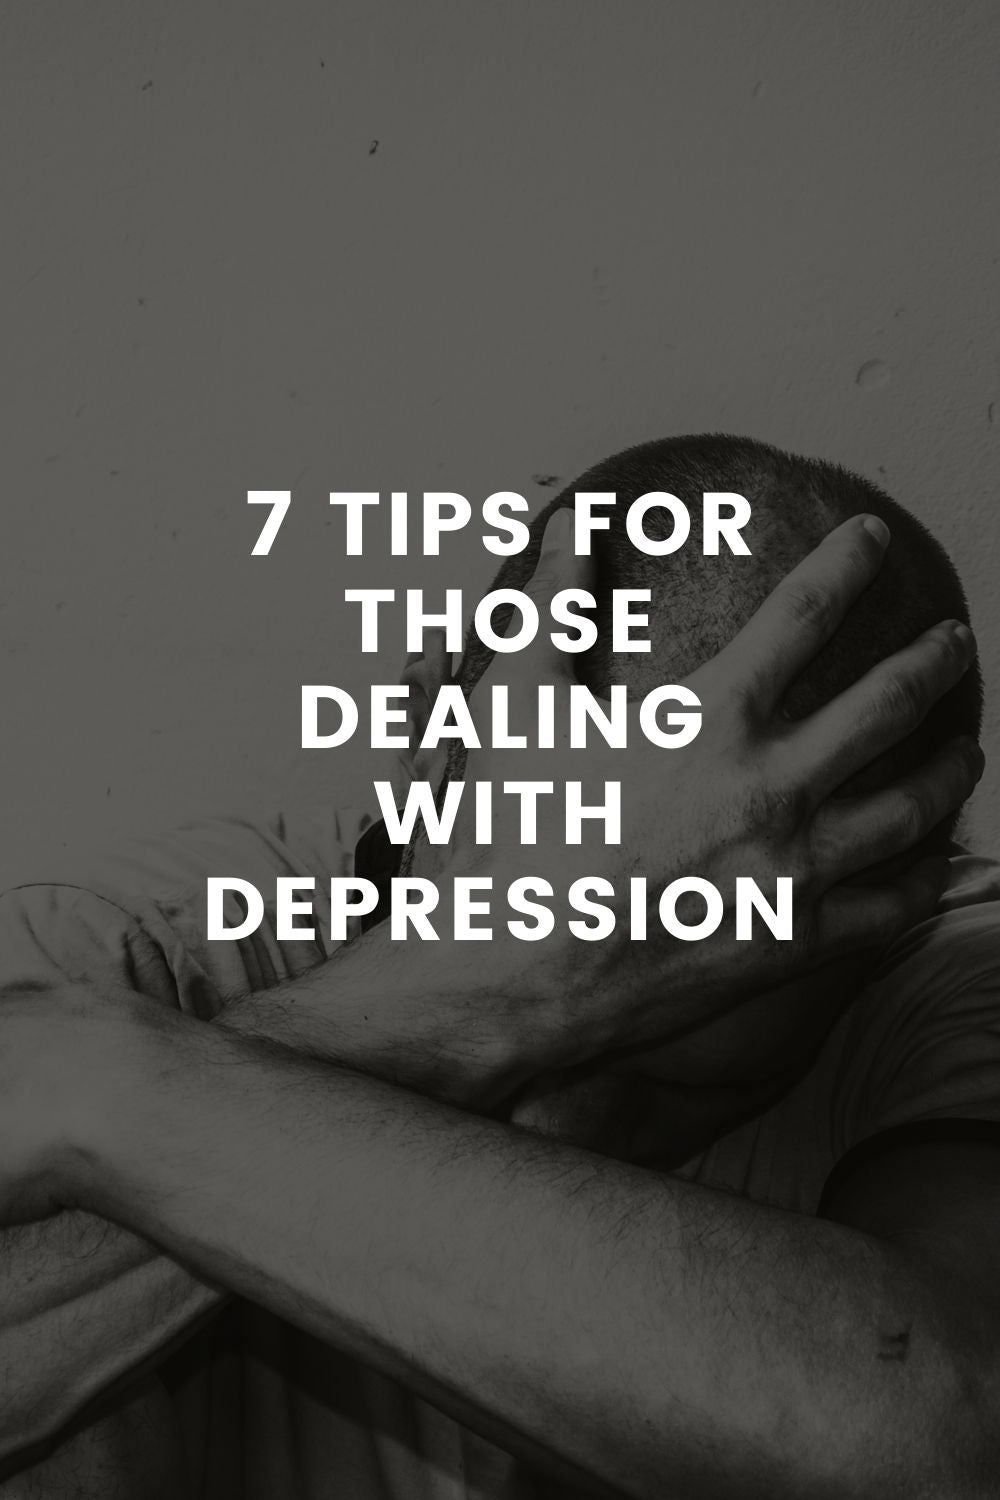 7 Tips For Those Dealing With Depression